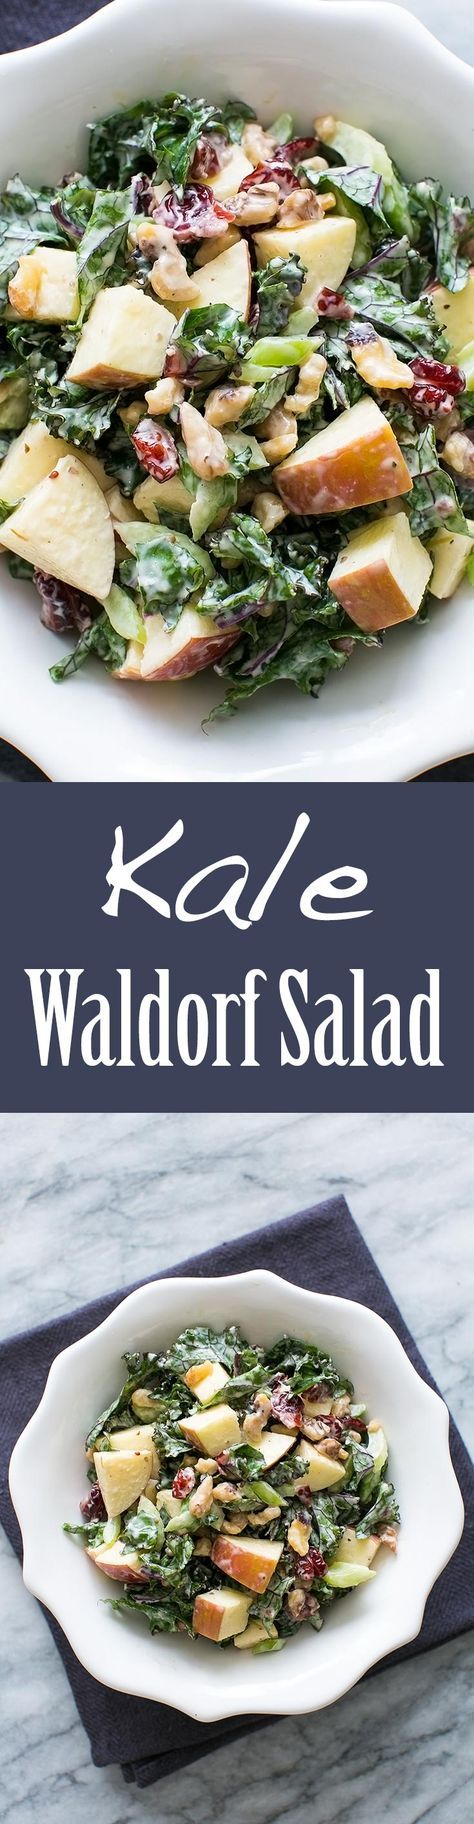 Kale Waldorf Salad ~ Best kale salad ever! A kale waldorf salad with apples, celery, walnuts, dried cranberries, and tangy mayo dressing ~ SimplyRecipes.com